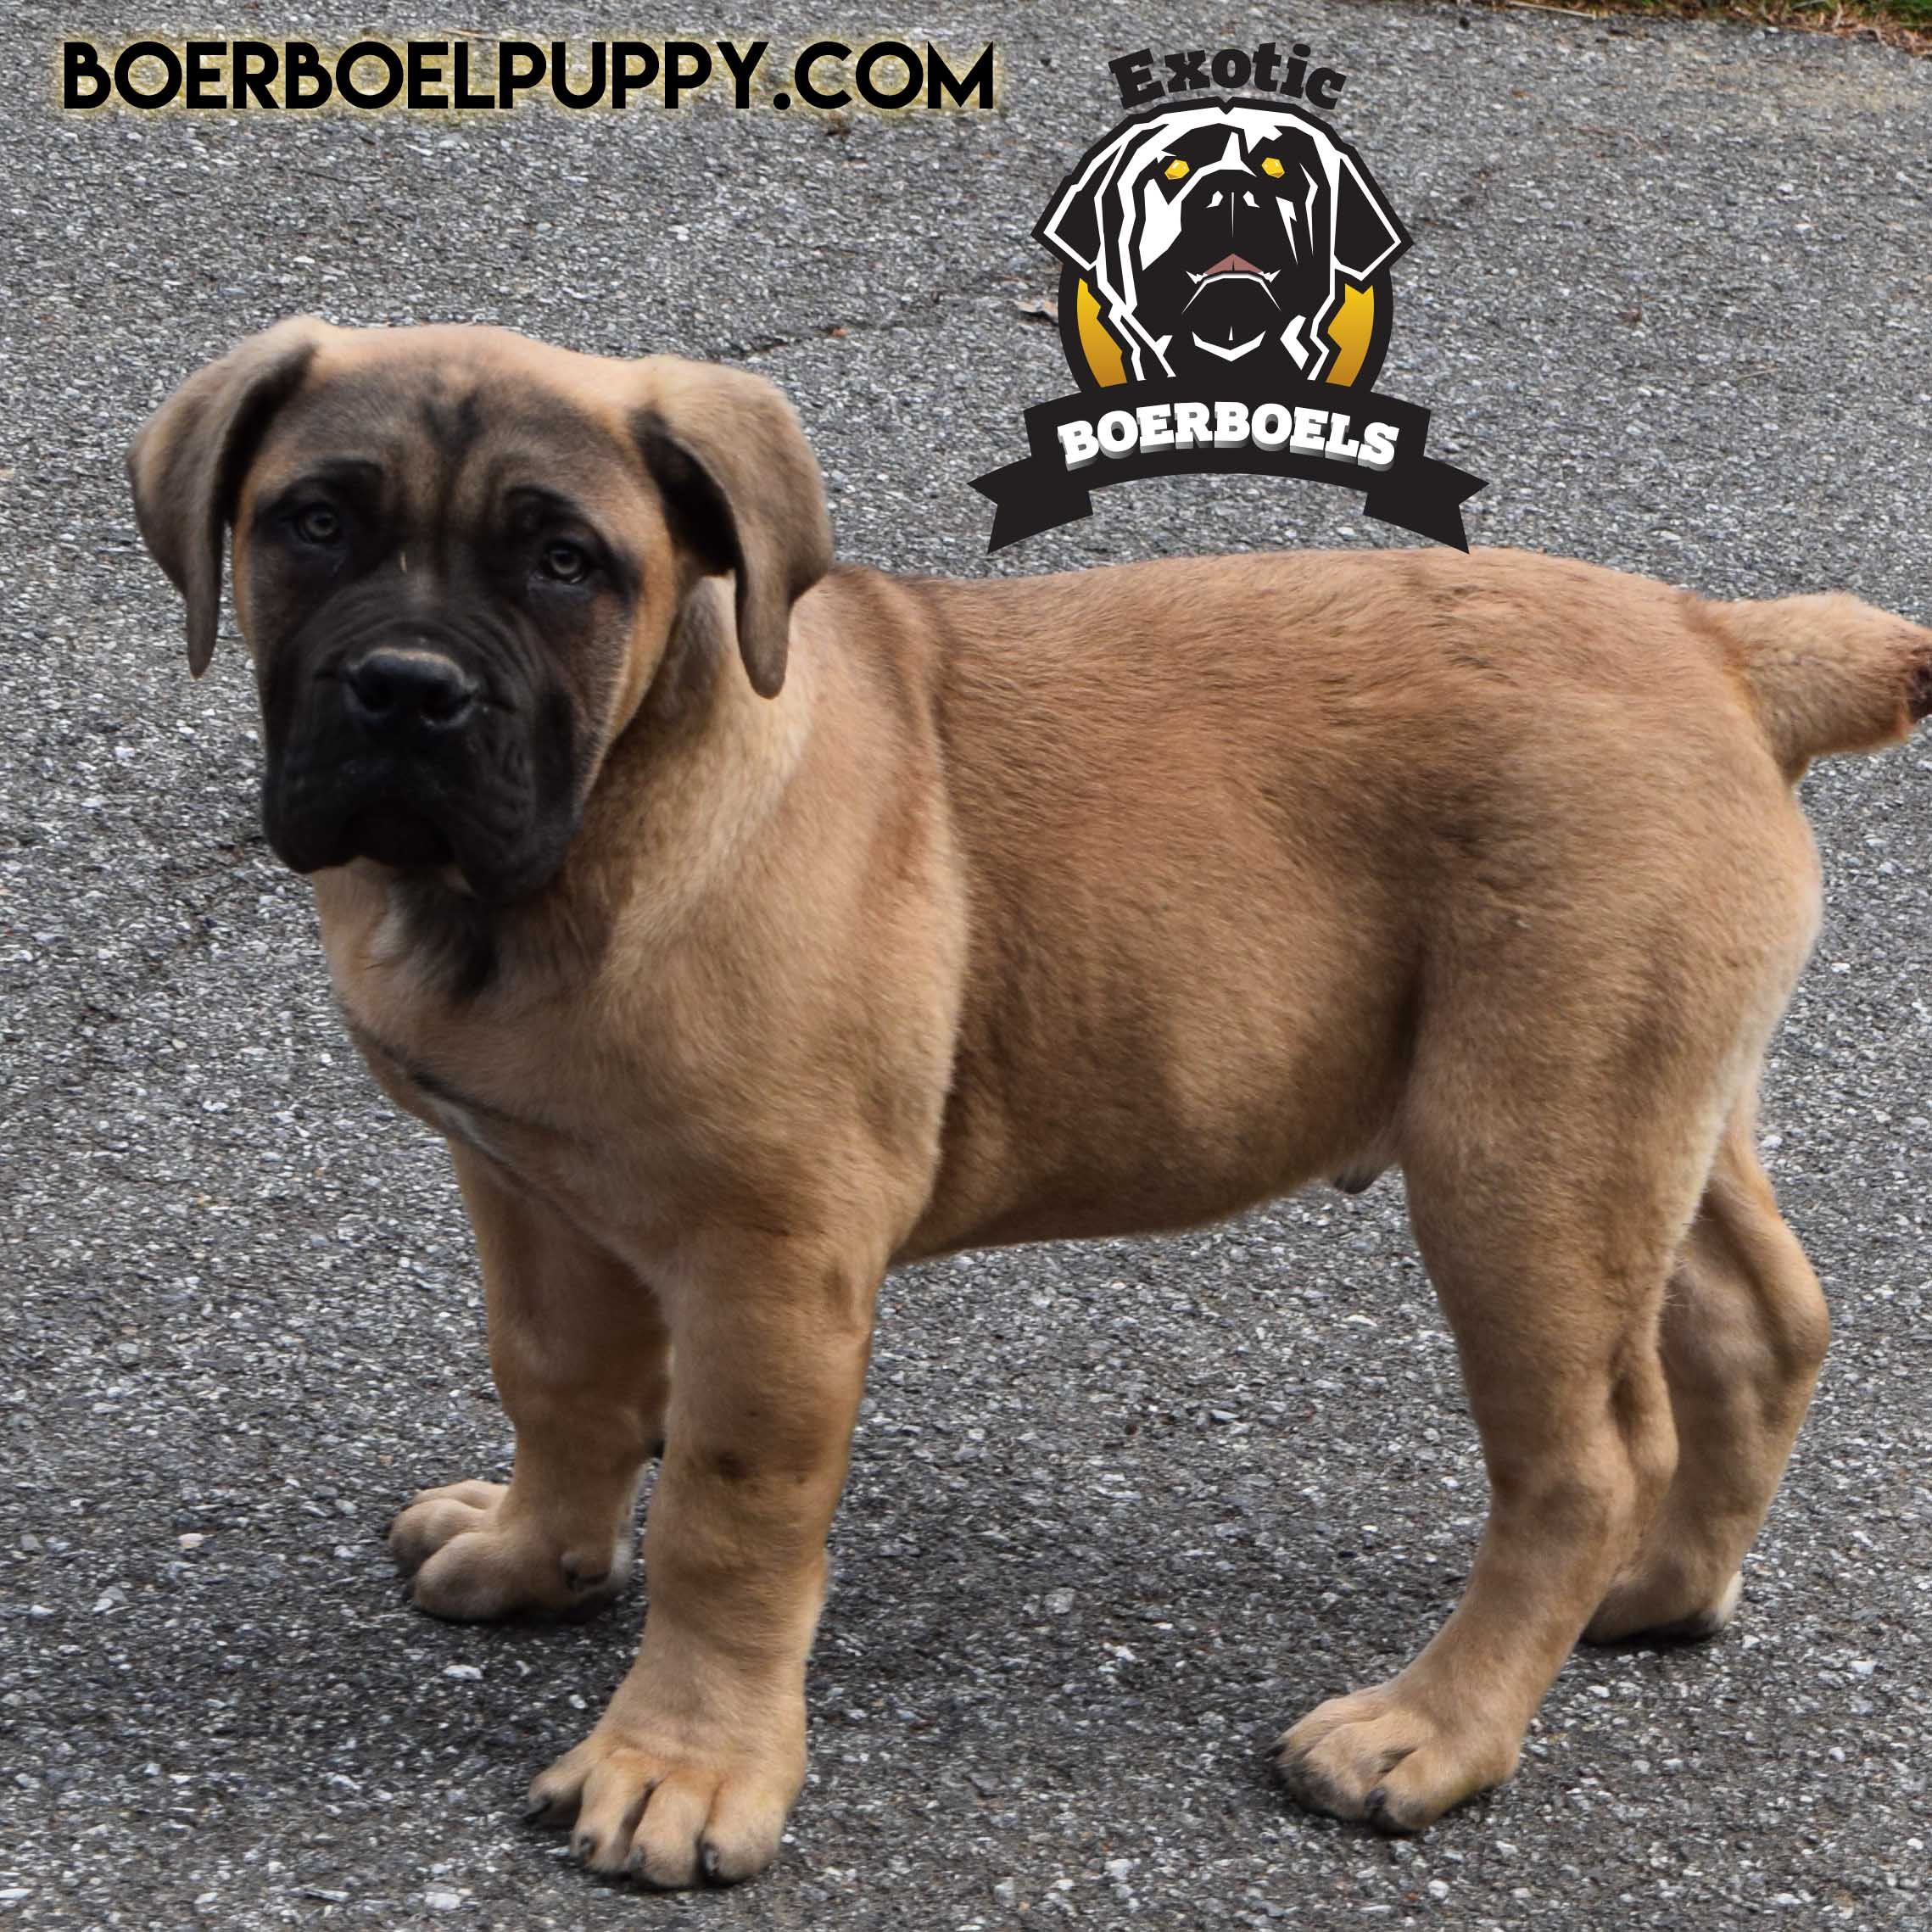 male puppy South african boerboel, Puppies, African